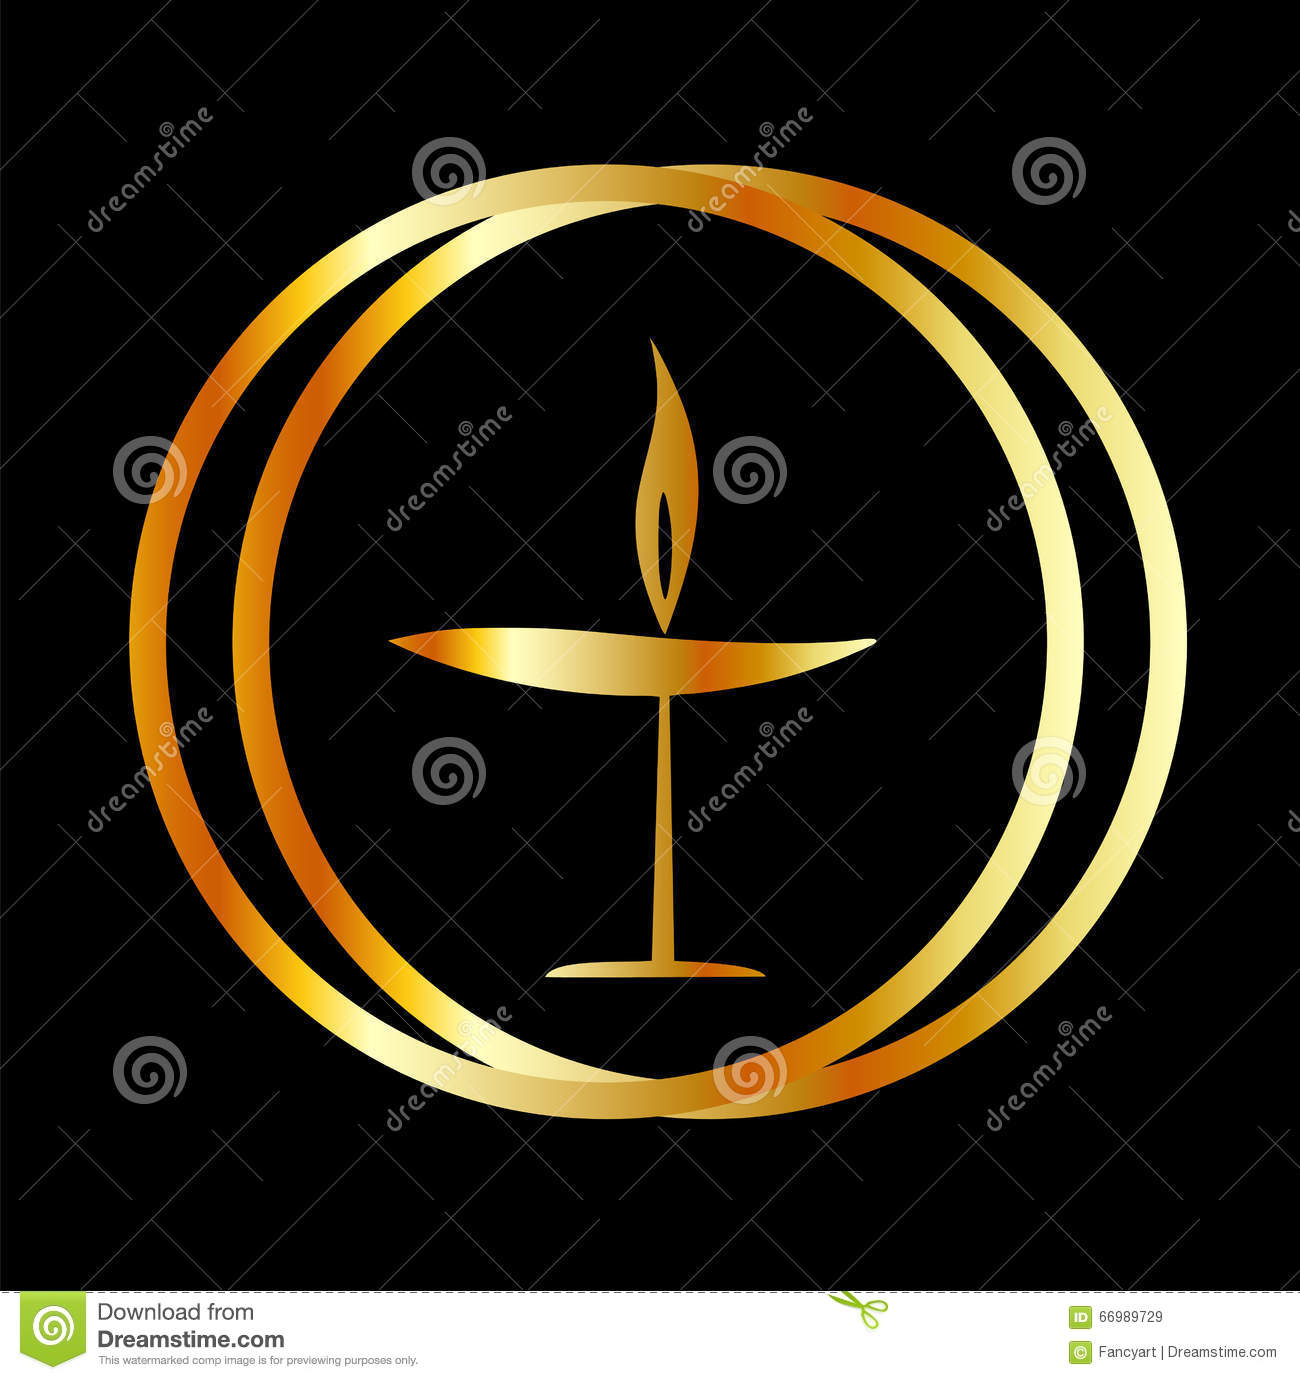 Our Symbol The Flaming Chalice: The Flaming Chalice Stock Image. Image Of Rings, Enlighten